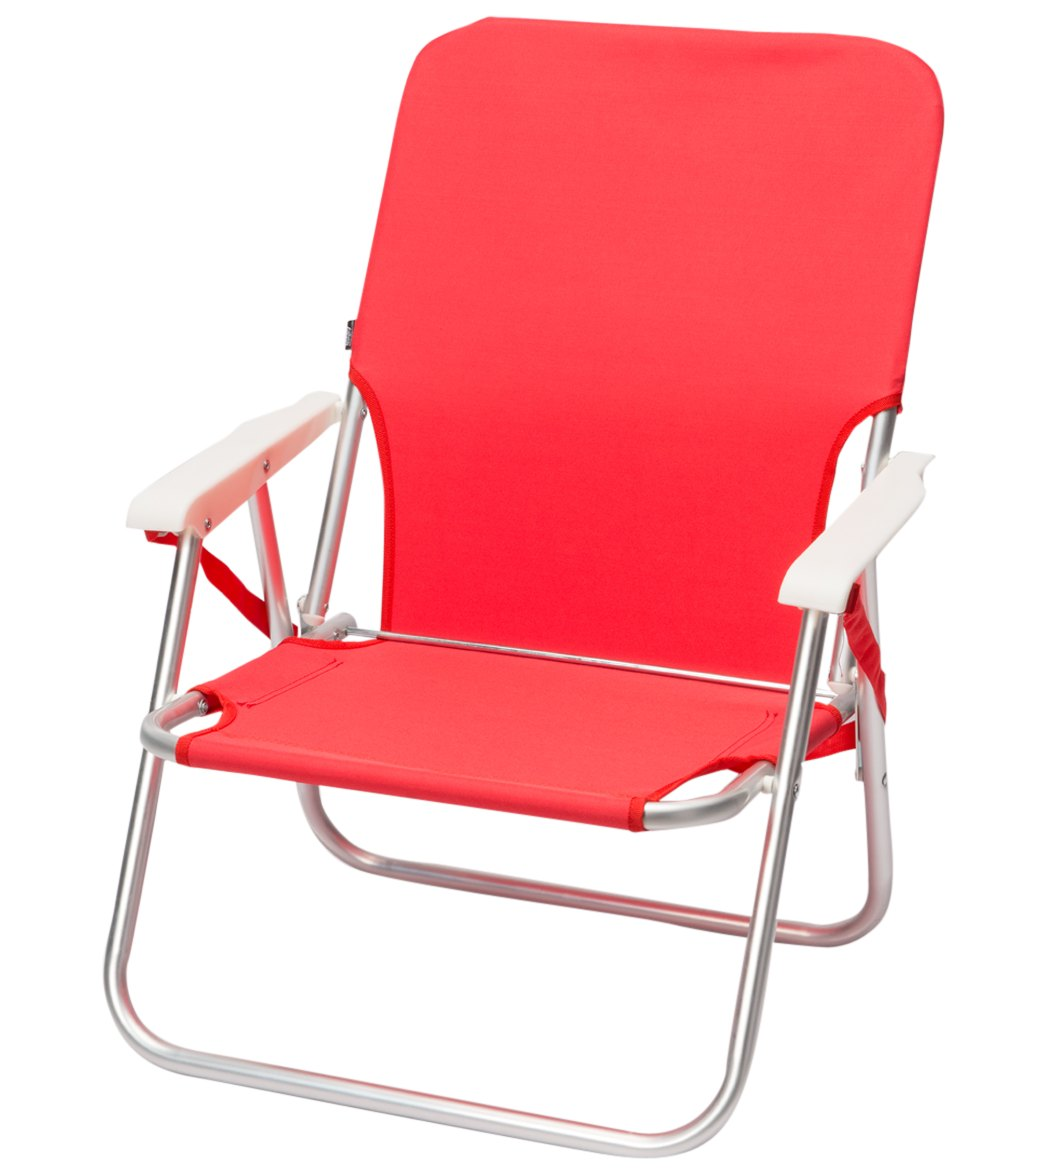 Beach Sling Chair Wet Products Red Sling Strap Beach Chair At Swimoutlet